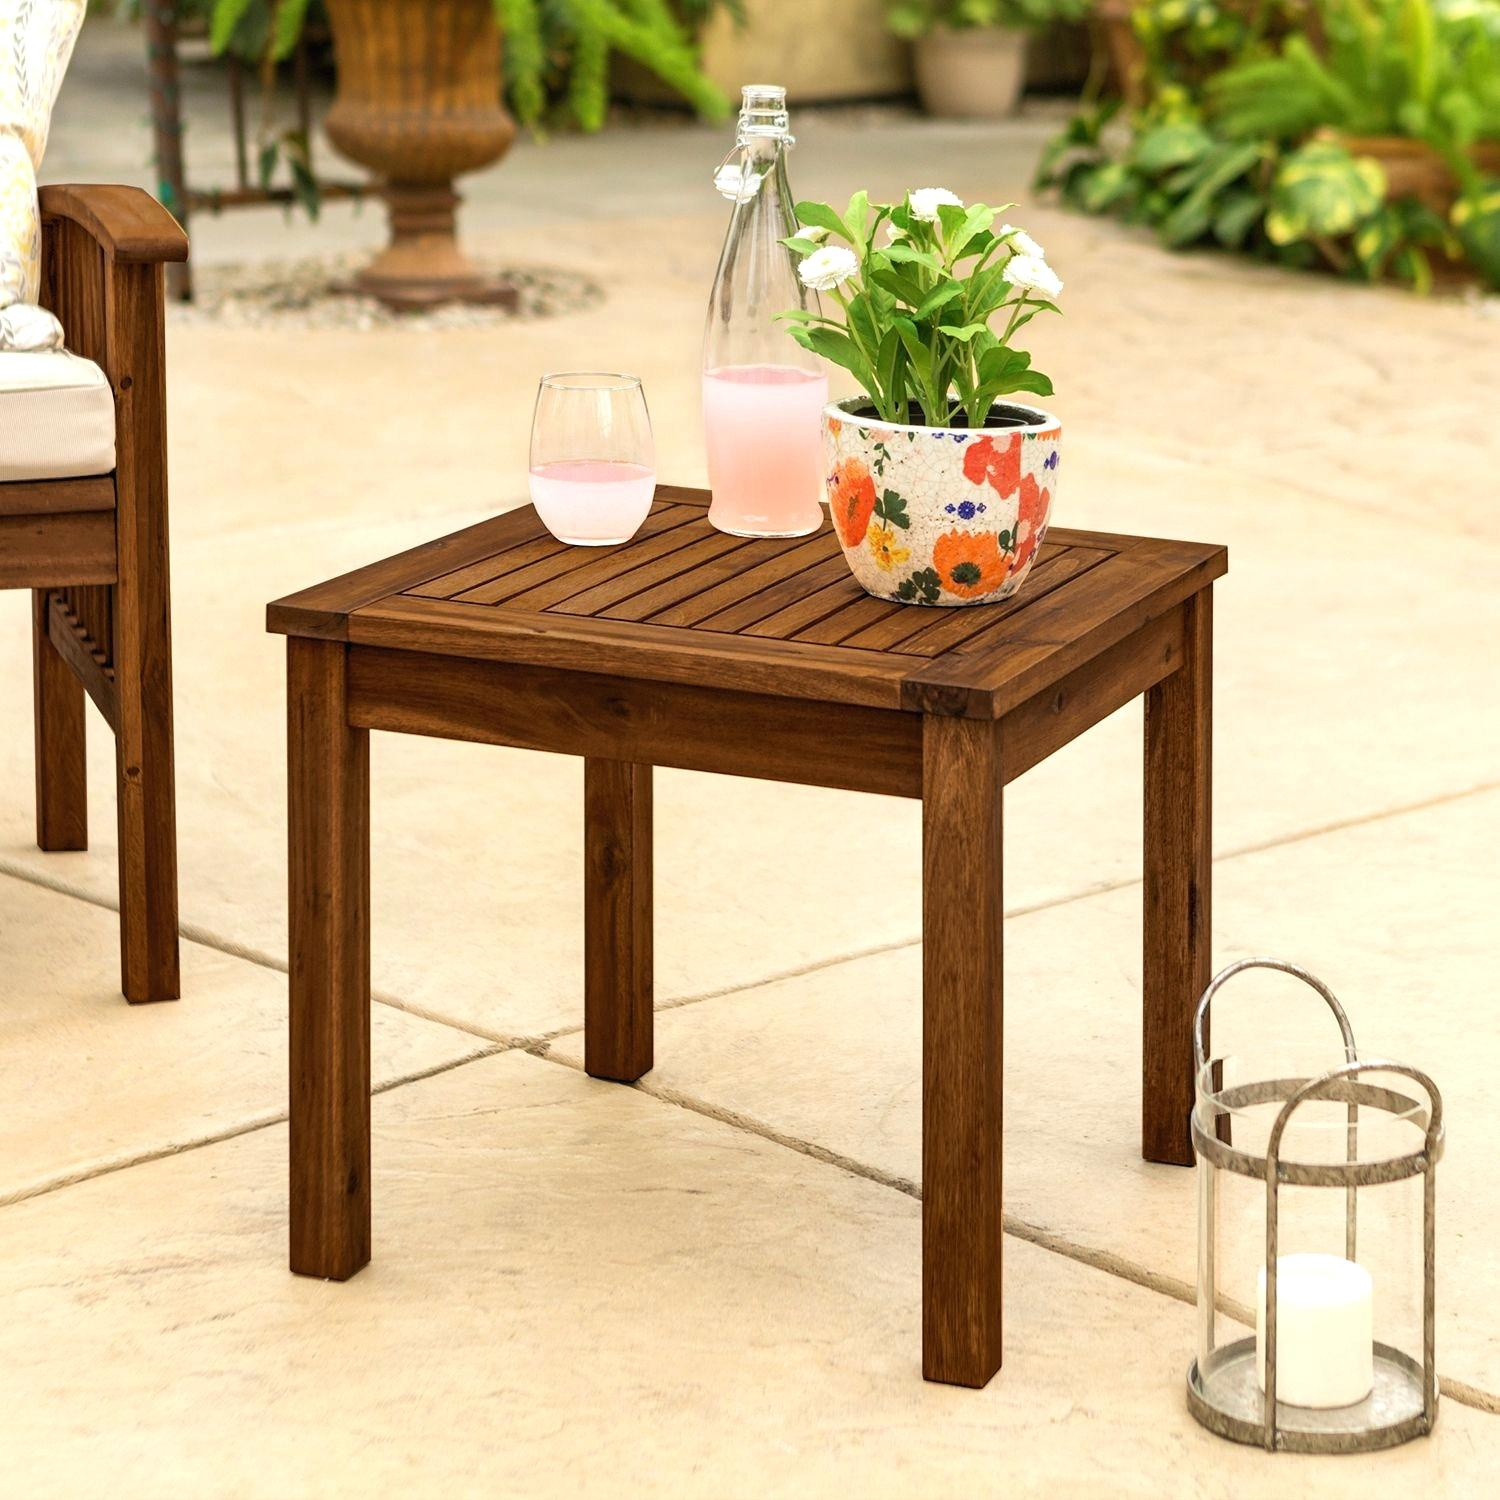 patio side table info tables outdoor accent kitchen cupboards the furniture pottery barn dishes lamp with usb port vintage drawers slim console retro cabinet mainstays marble